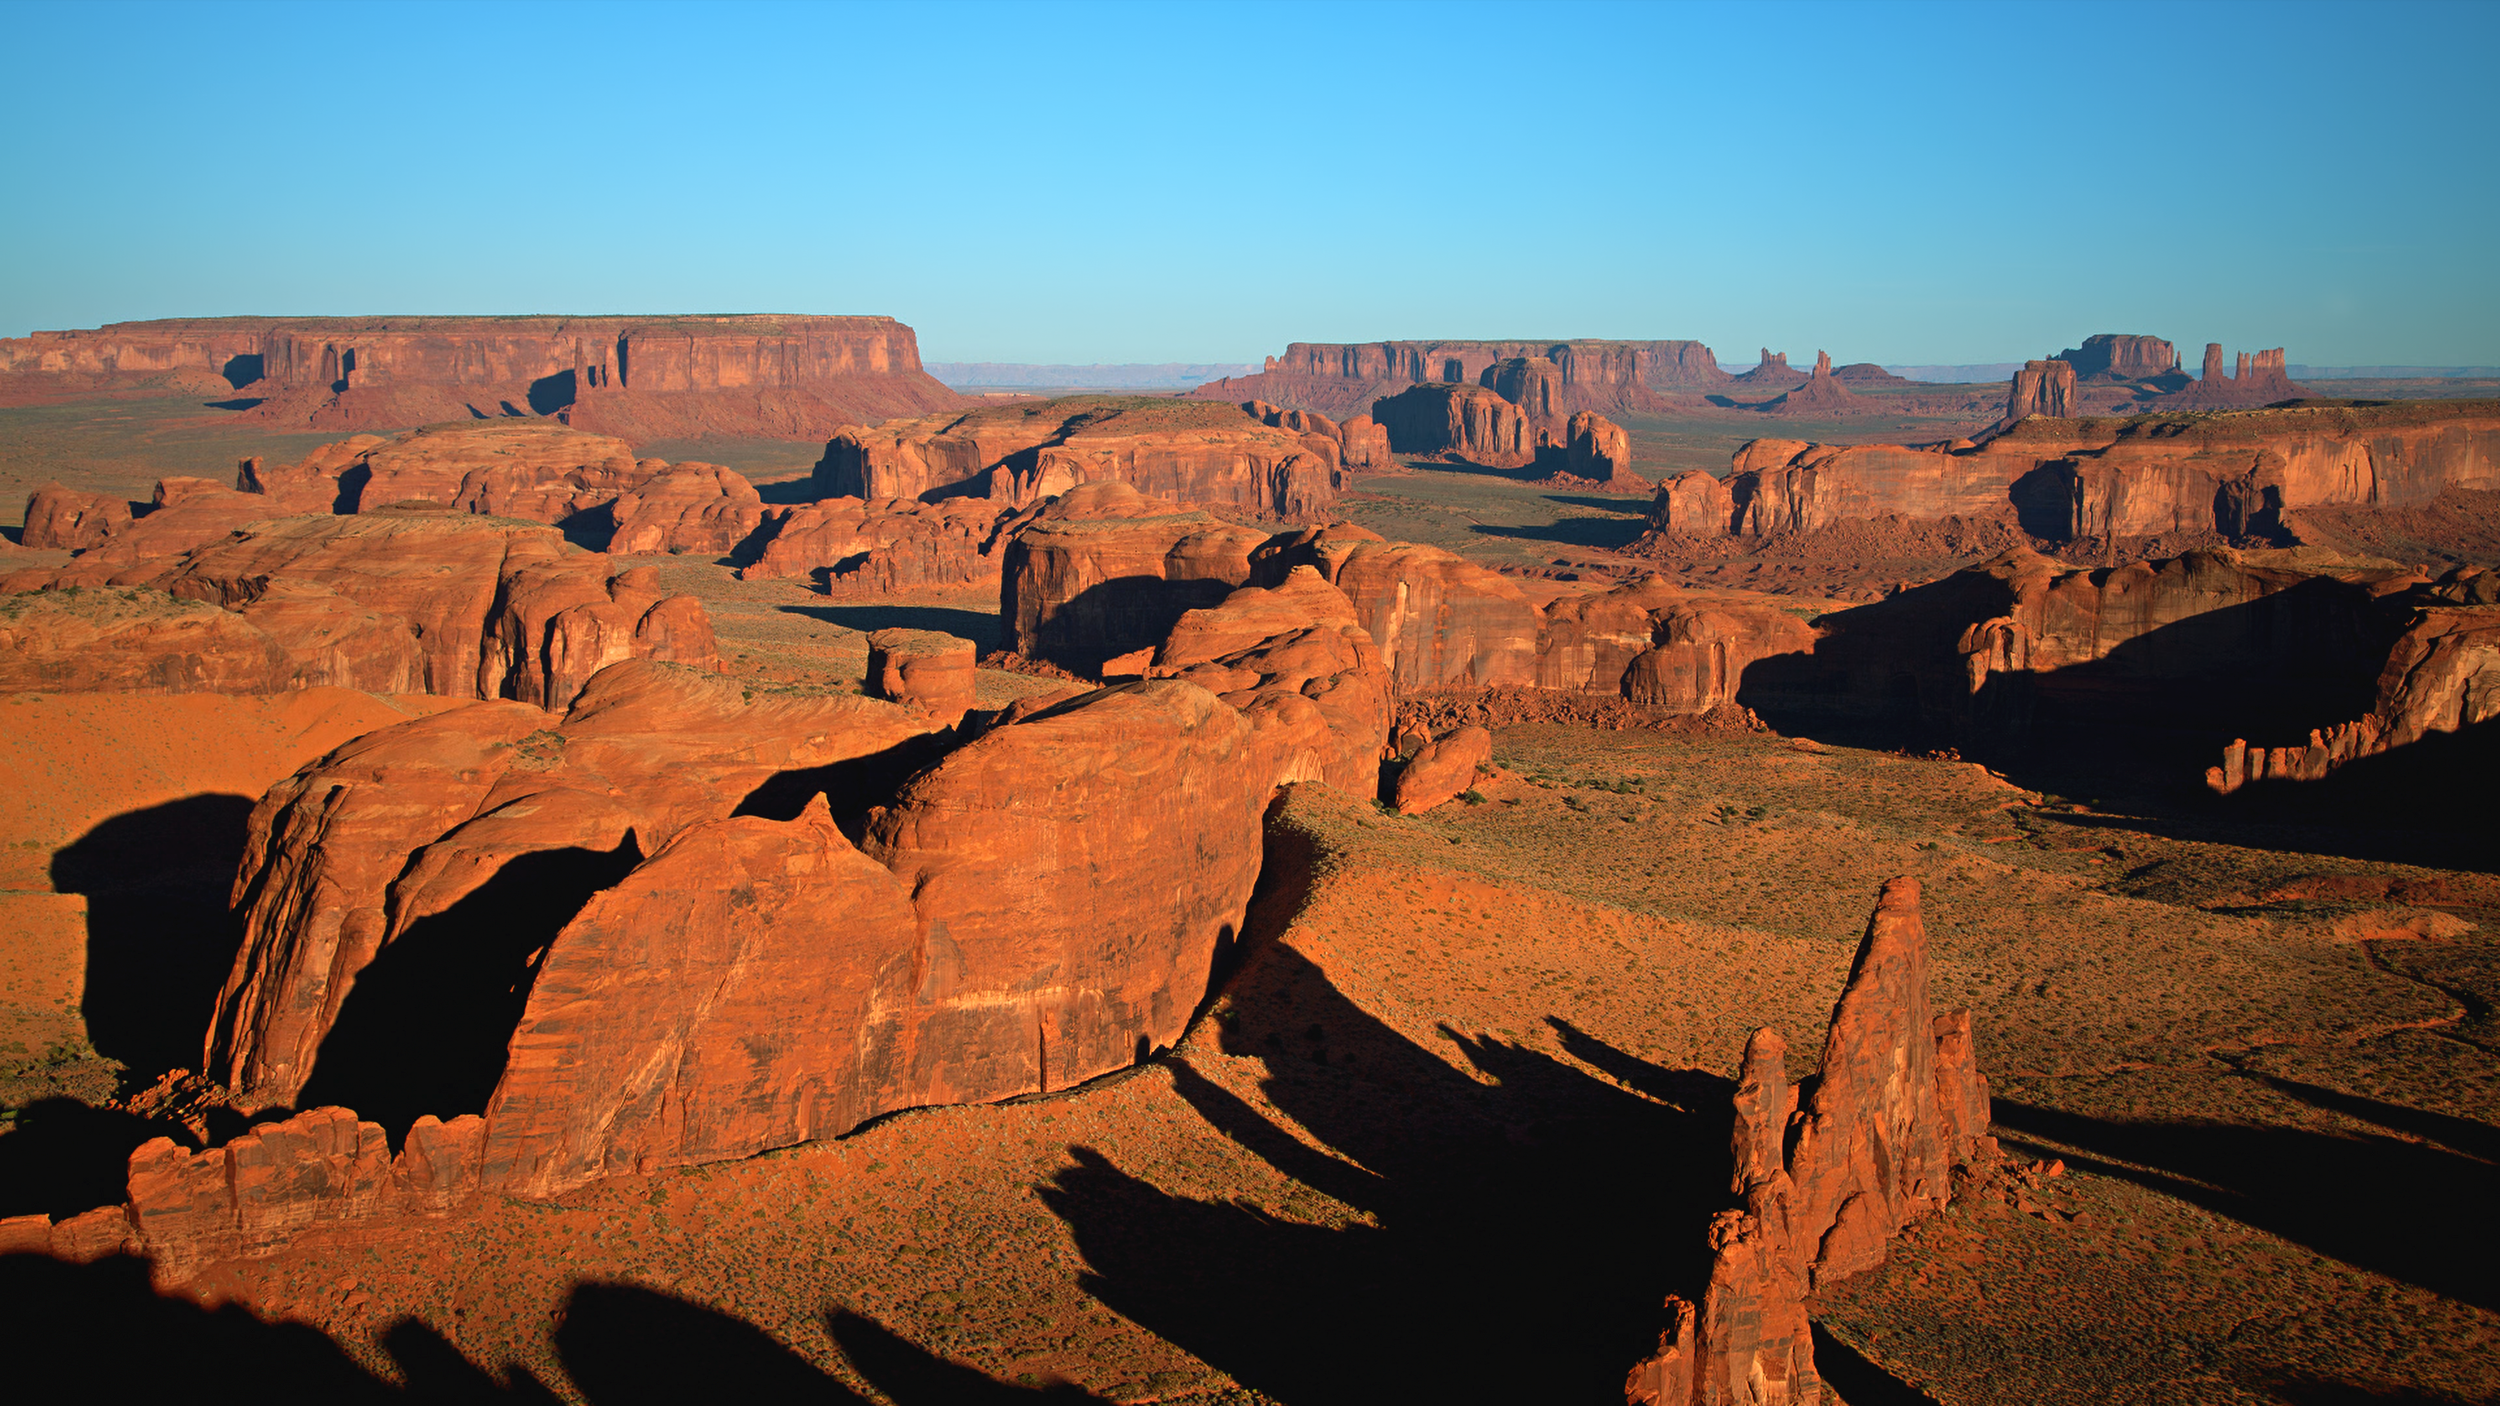 View of Monument Valley from atop Hunts Mesa, Utah.